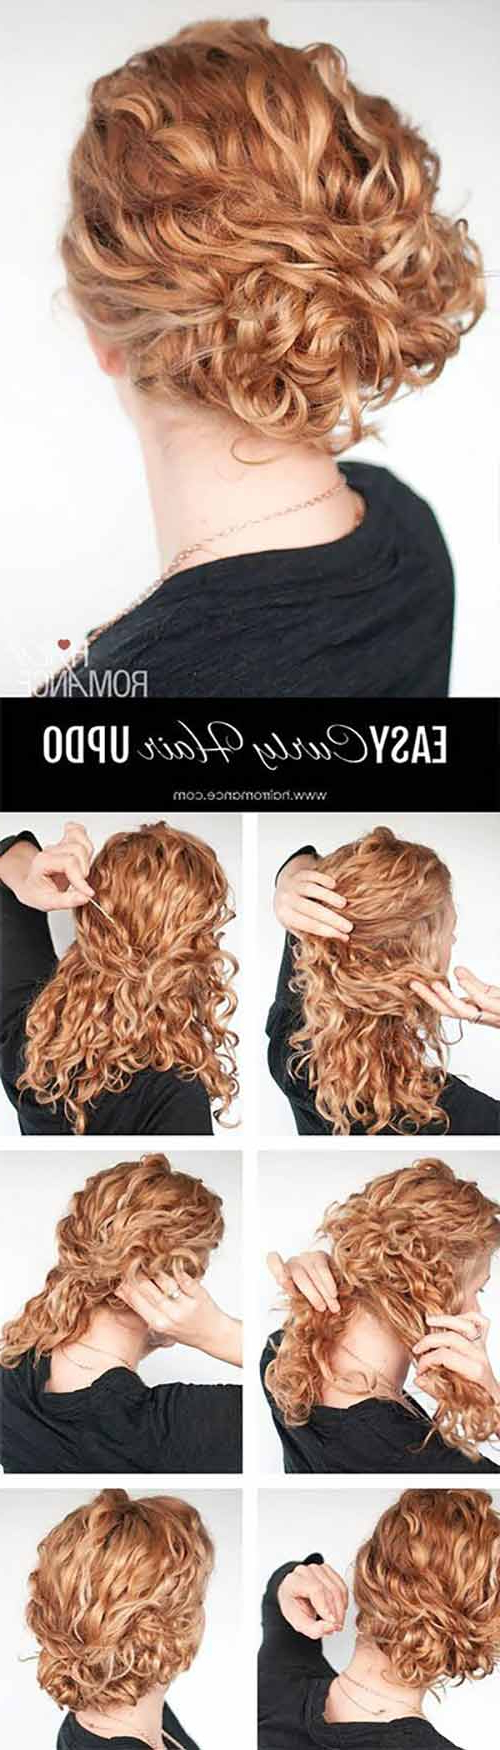 20 Incredibly Stunning Diy Updos For Curly Hair Within Most Up To Date Messy Updo Hairstyles With Free Curly Ends (View 2 of 20)